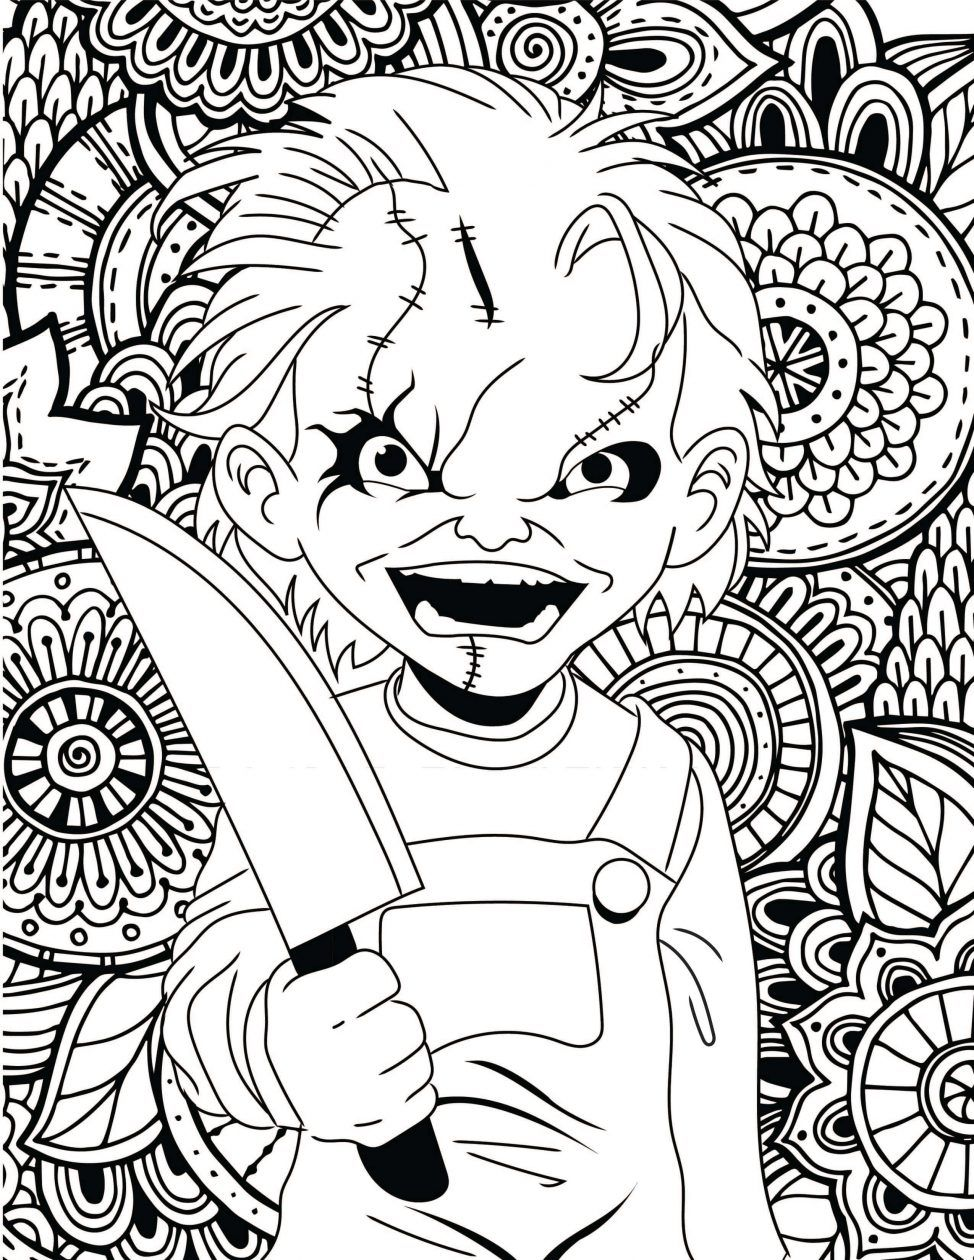 Image Result For Little House Of Horror Coloring Pages Halloween Coloring Pages Printable Halloween Coloring Halloween Coloring Pages